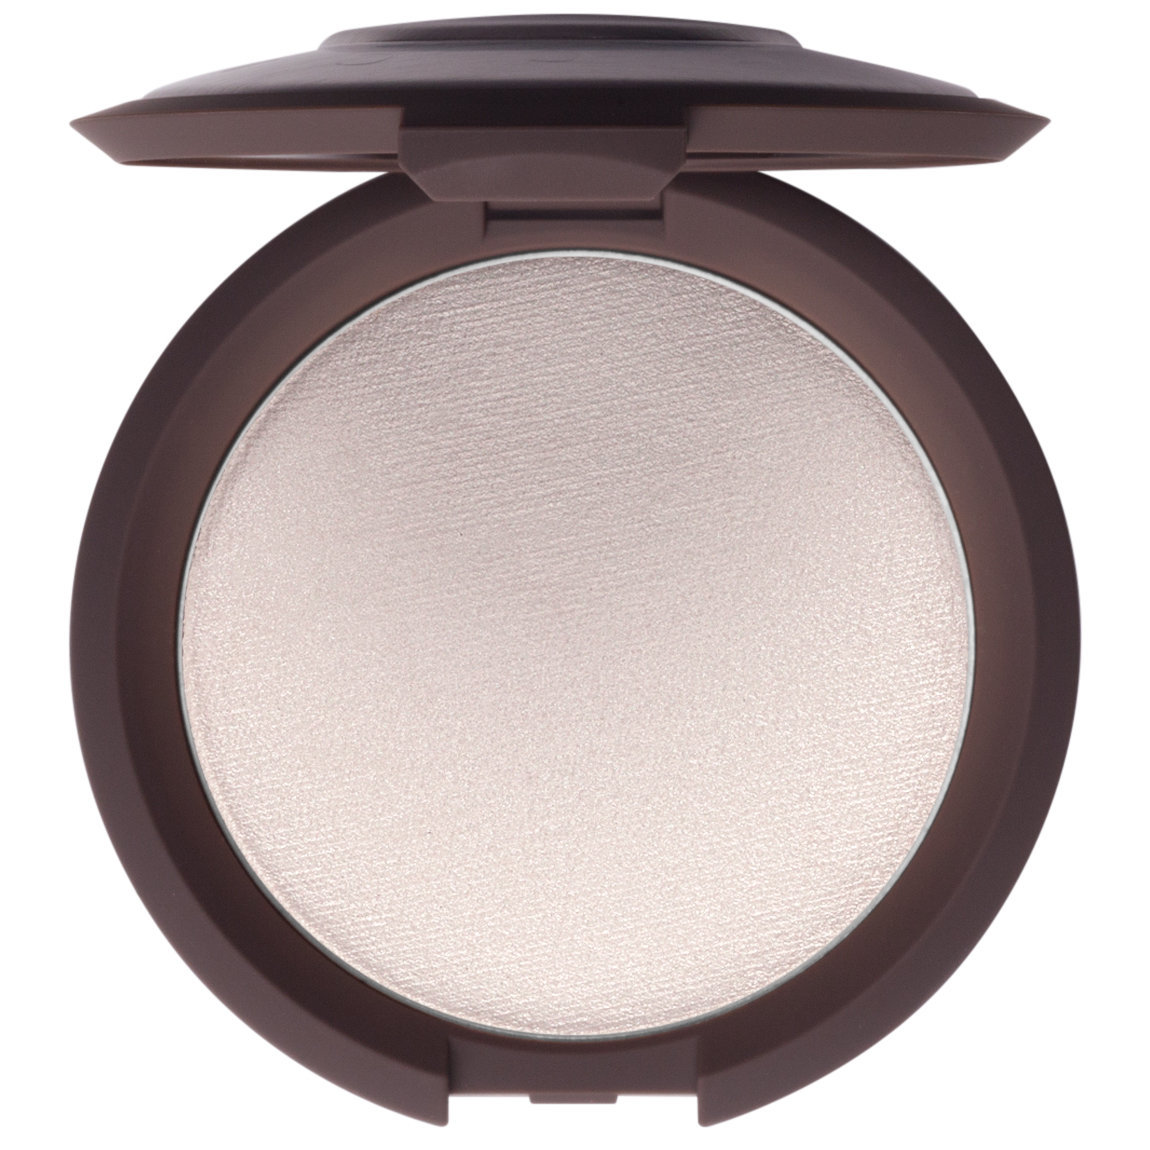 BECCA's Pearl - This is the only highlighter I use on very fair skin.  It blends in and provides a beautiful glow without being too obvious.